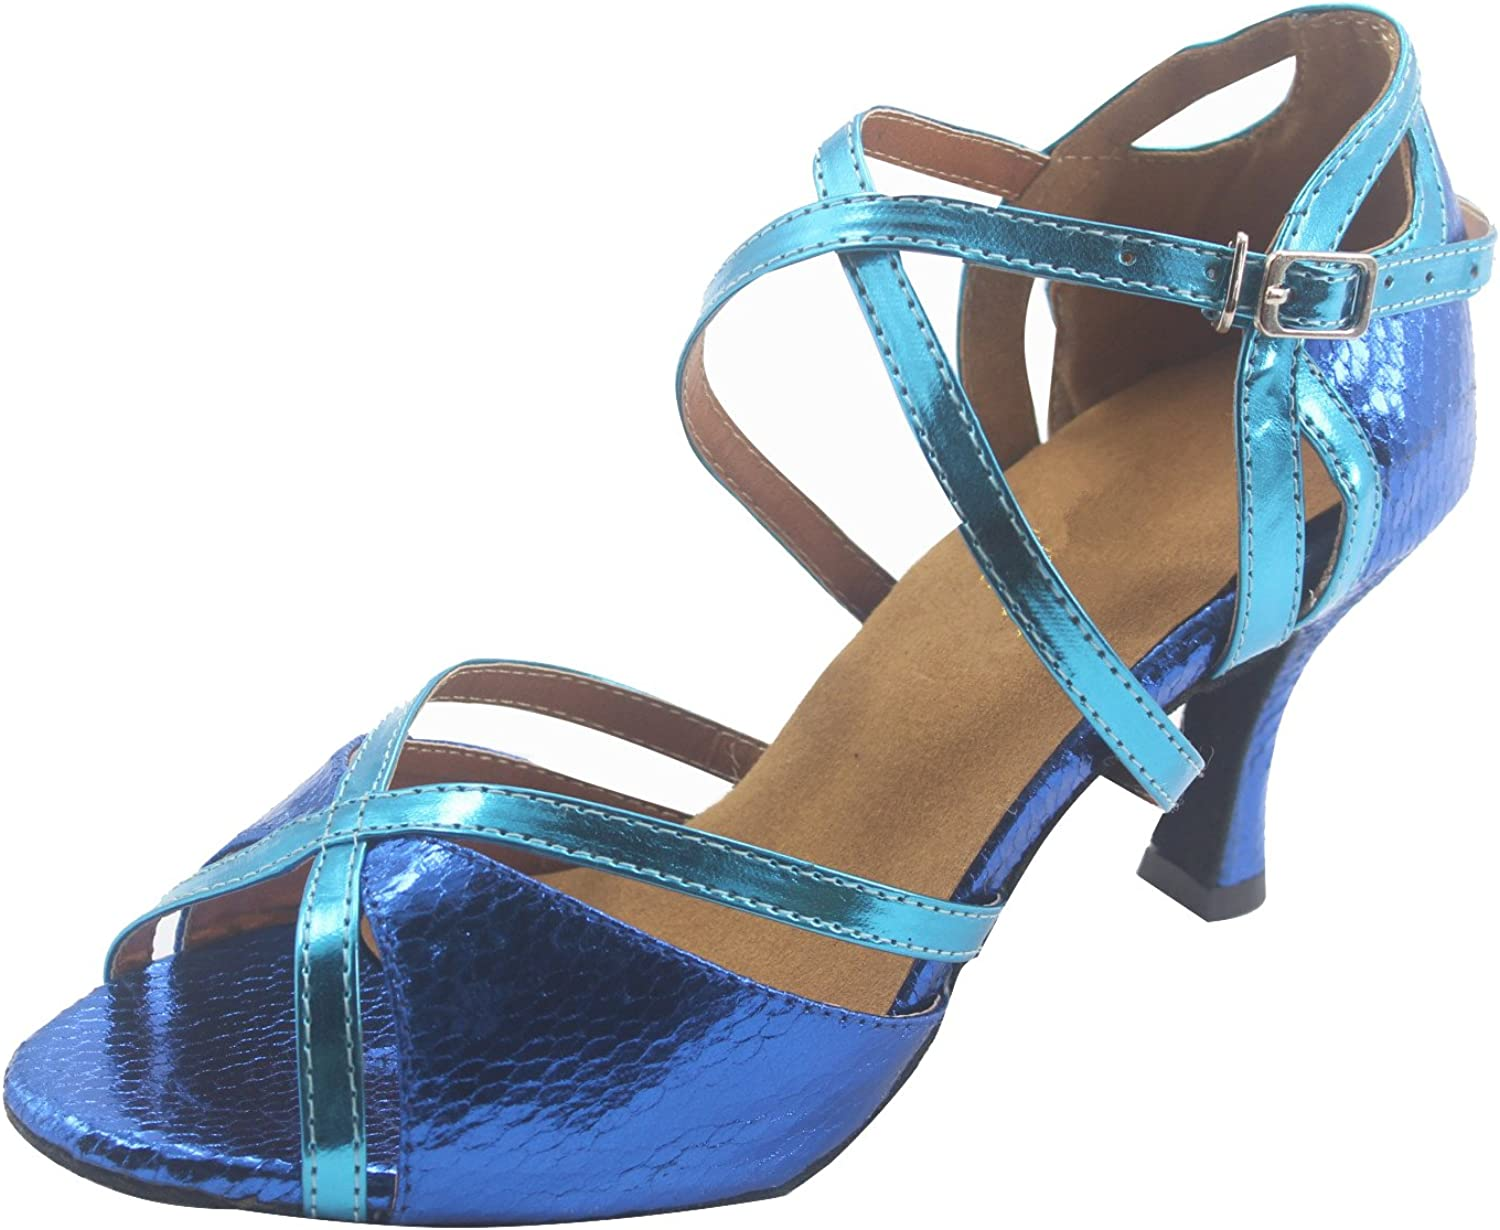 MsMushroom Woman's Shinning Patent Leather Party shoes 2.5''heel,bluee